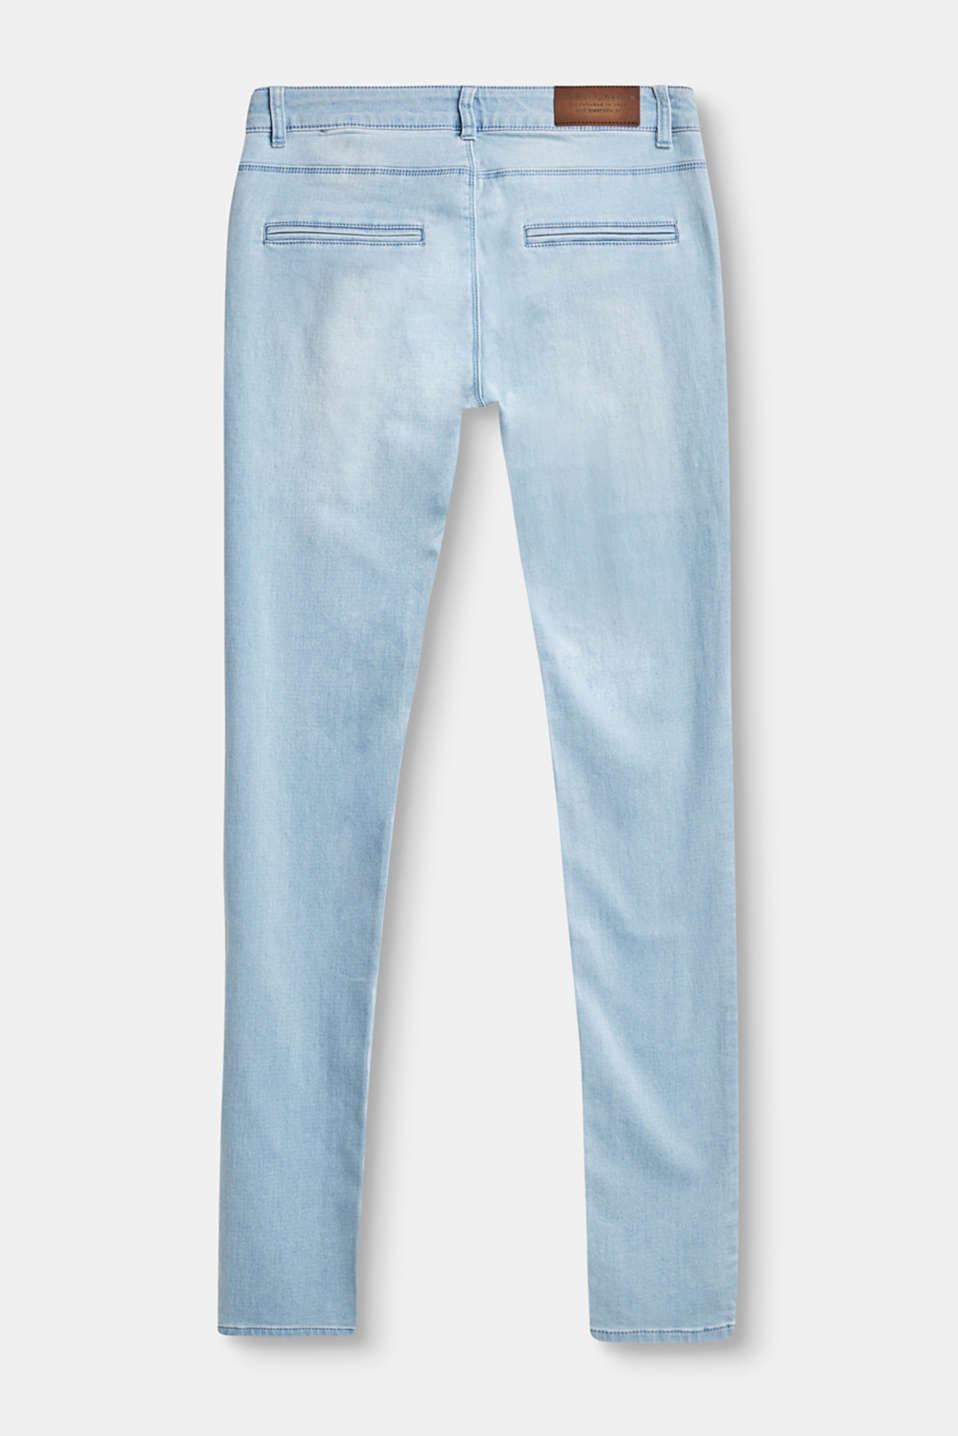 Jean stretch ultra-doux, style chino